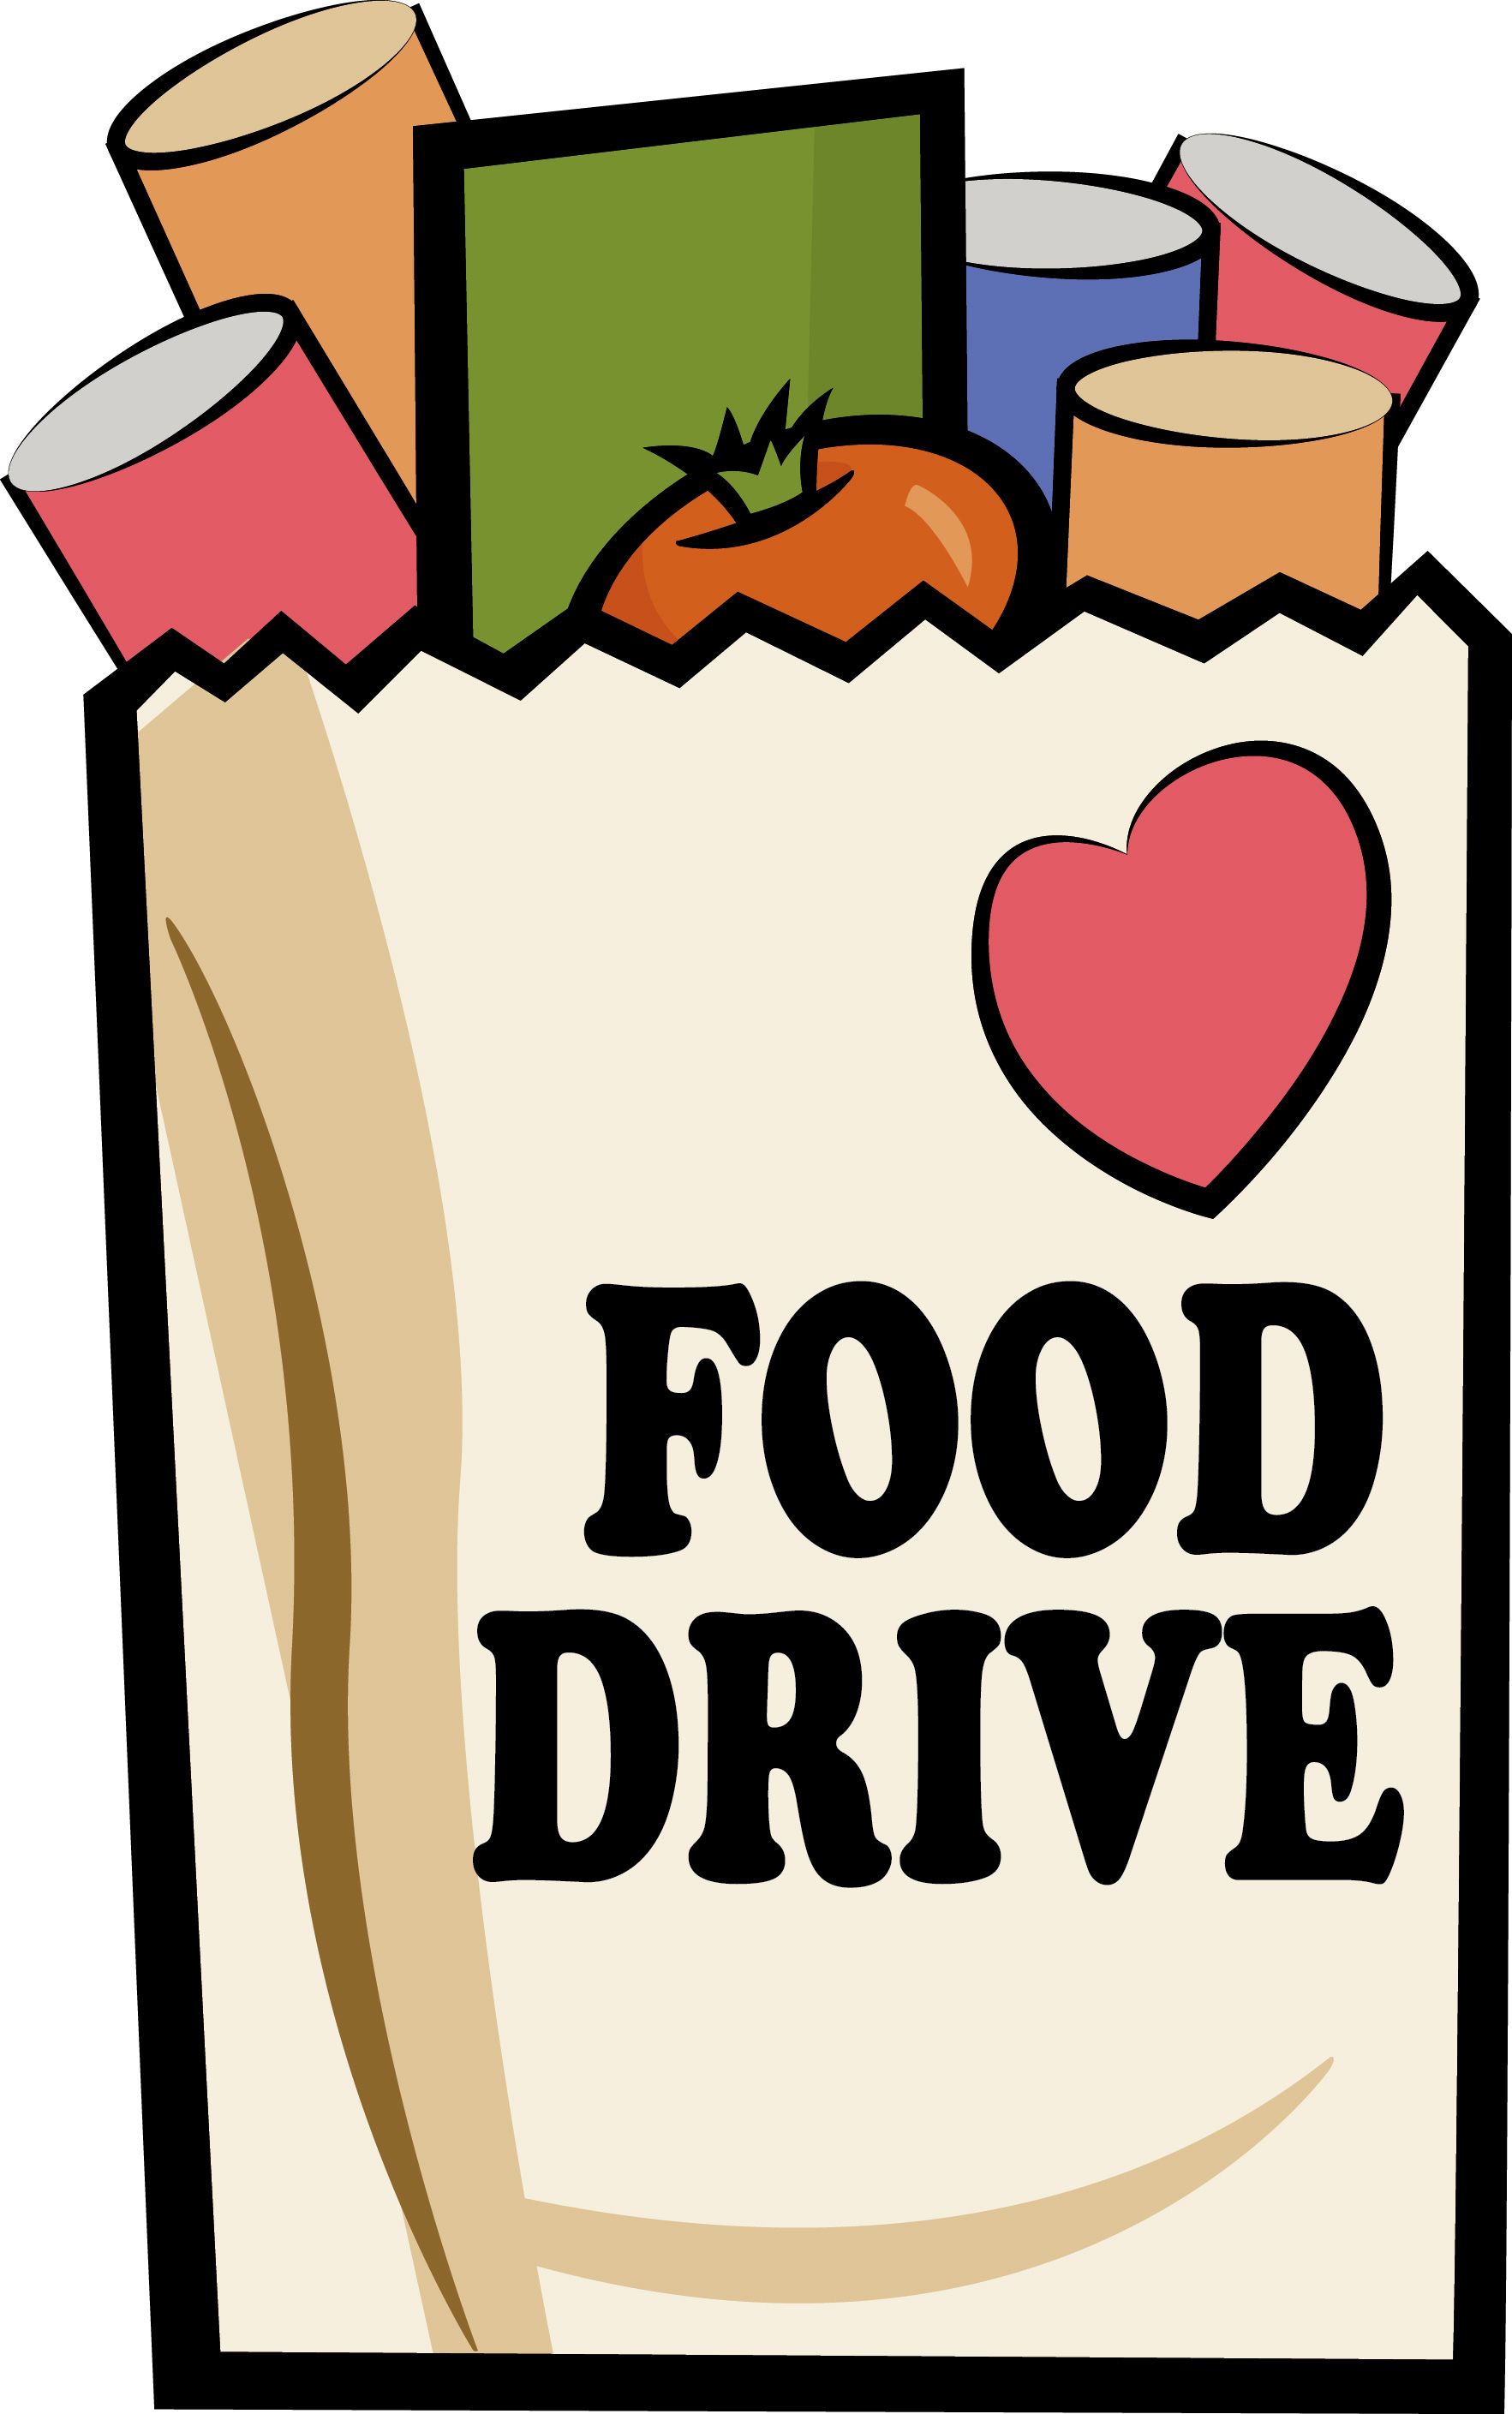 Newsletter/FoodDrive.jpg